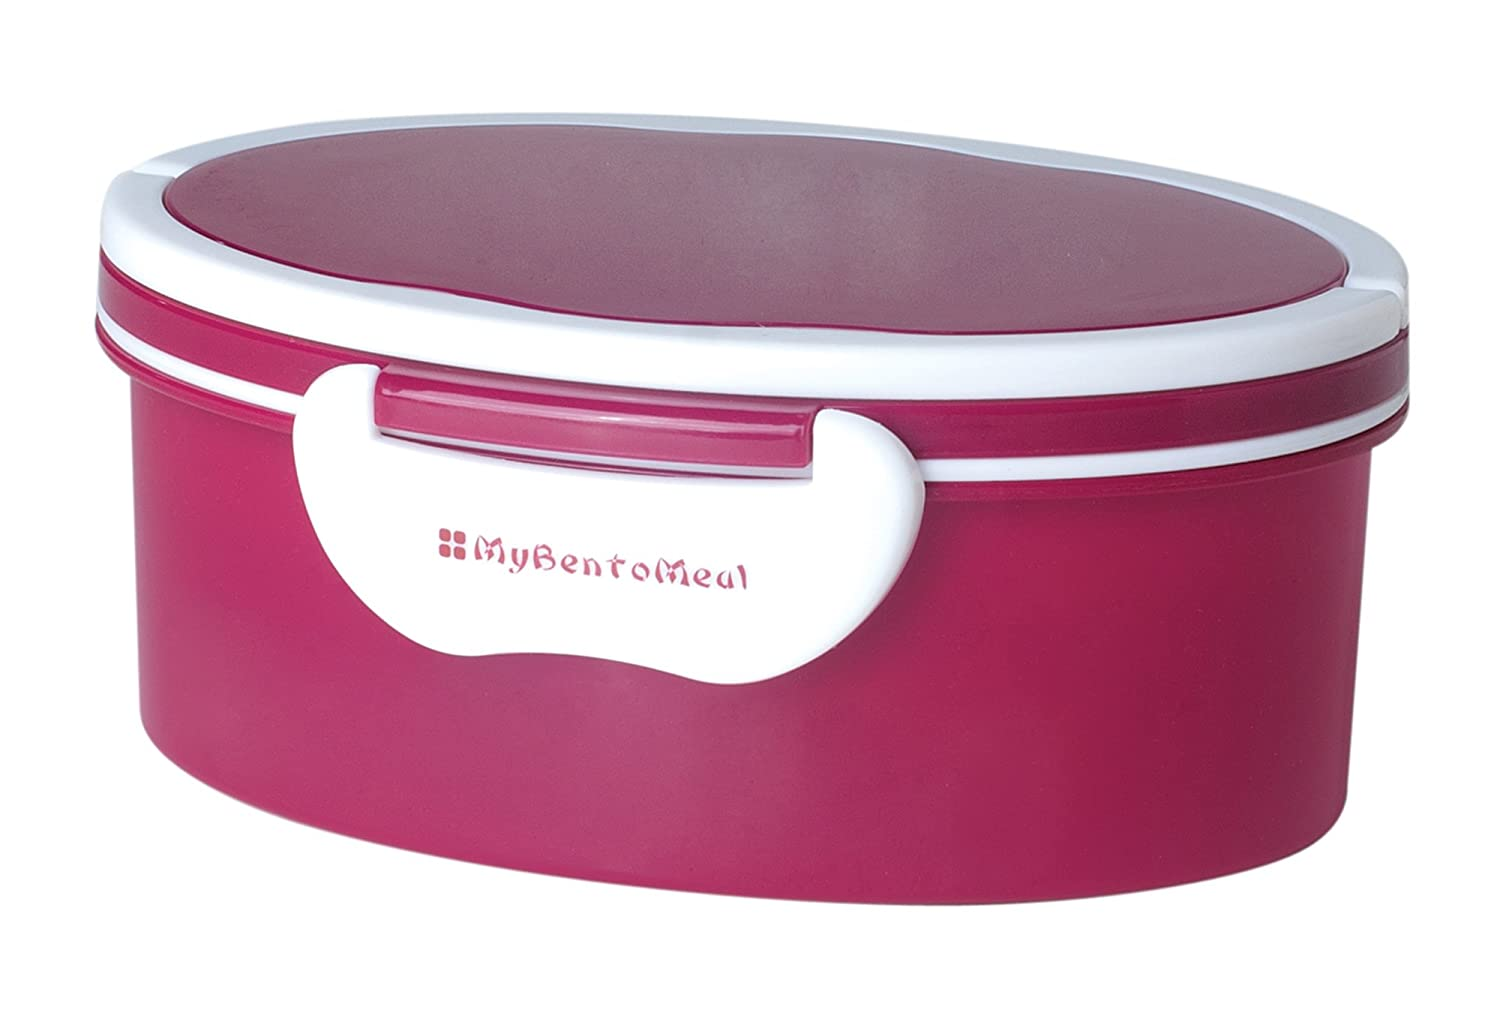 Mulberry Oval Bento Box with Handle